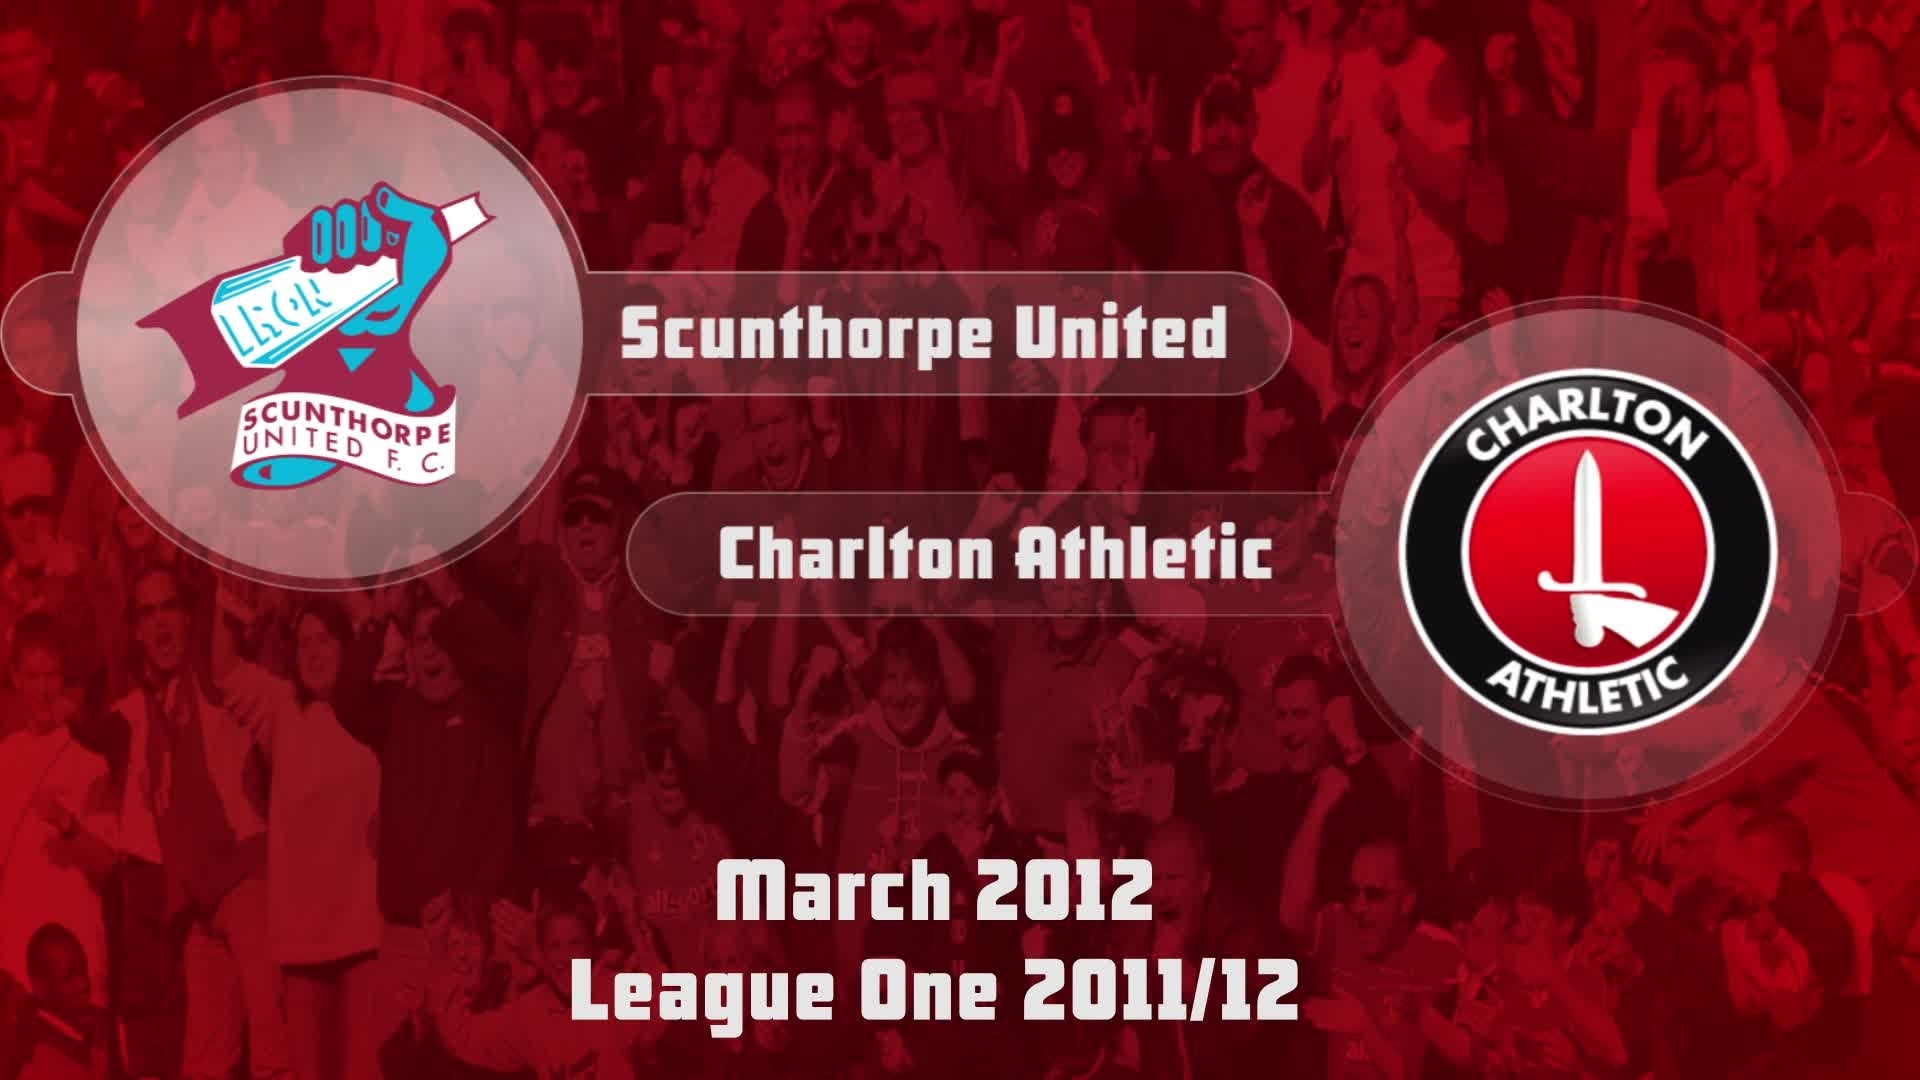 43 HIGHLIGHTS | Scunthorpe 1 Charlton 1 (March 2012)